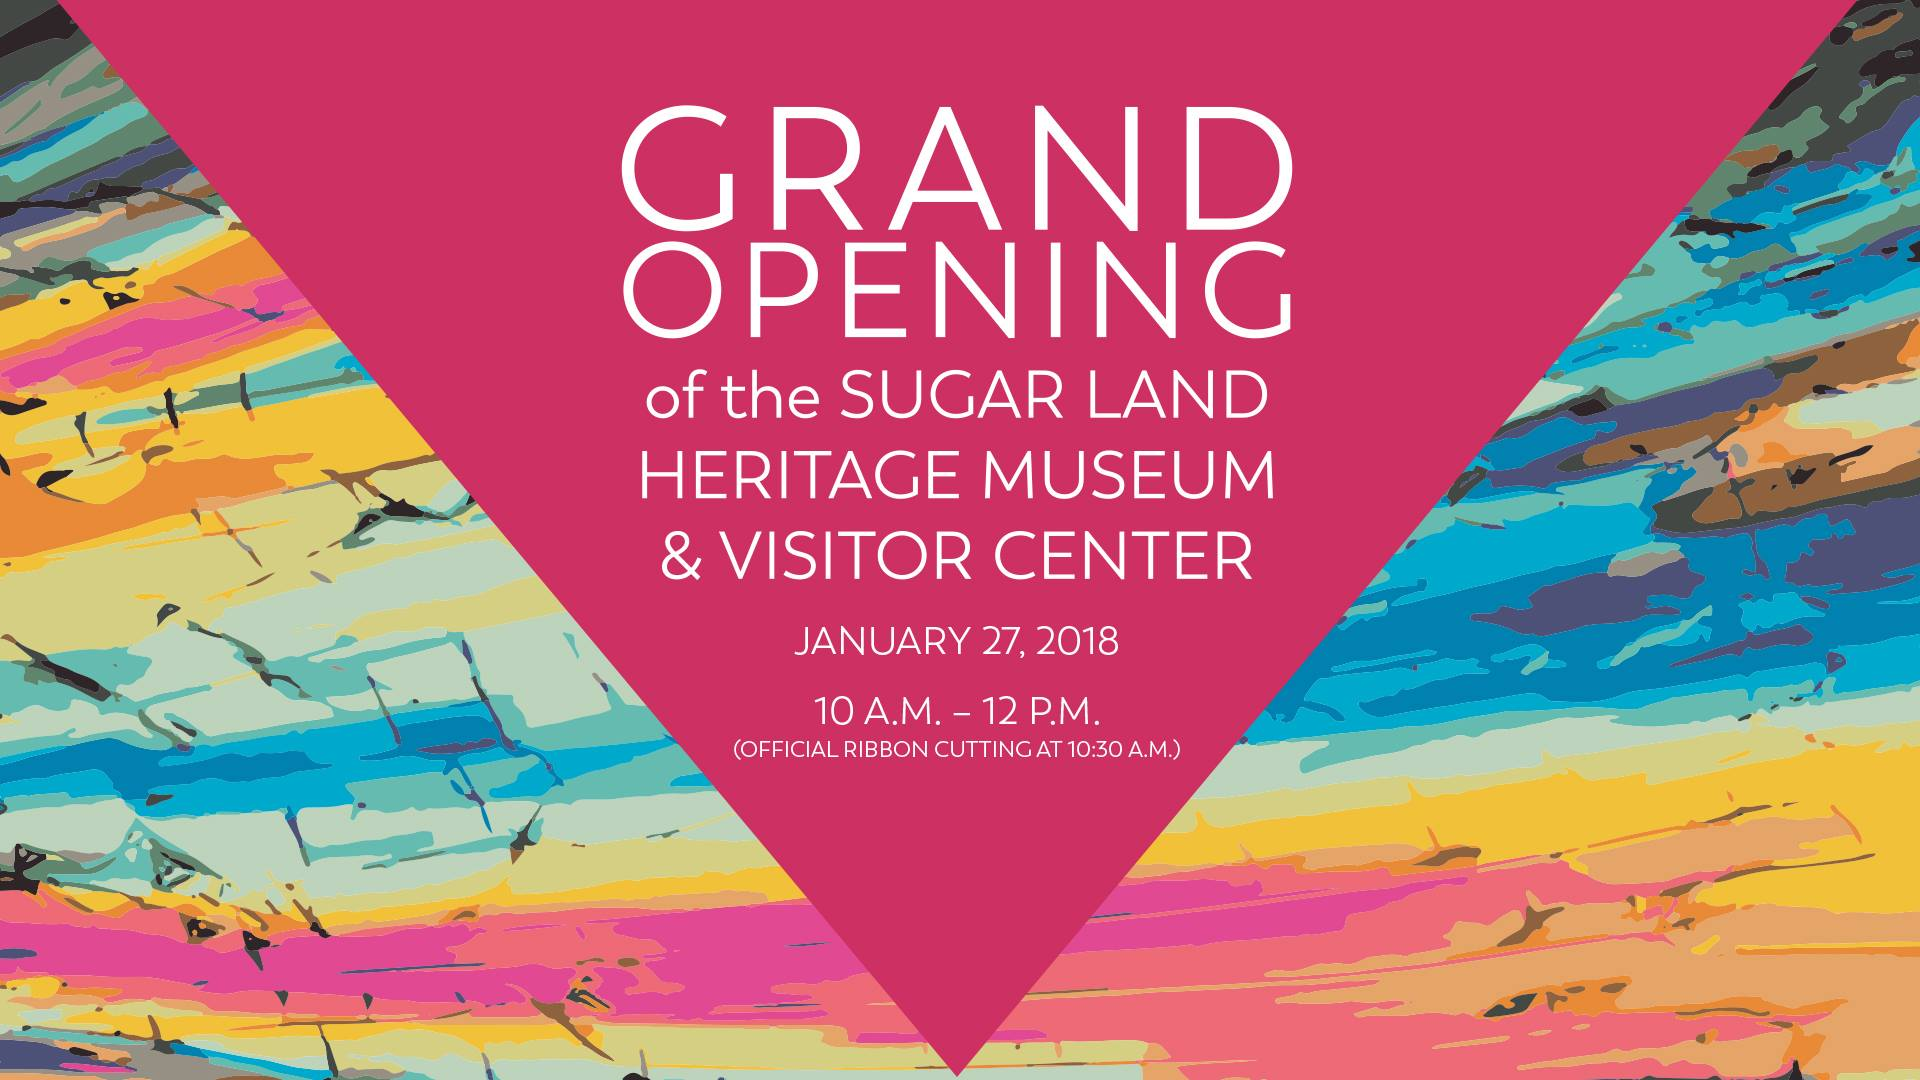 Sugar Land Heritage Museum and Visitor Center to Hold Grand Opening - Sugar Land Heritage Foundation